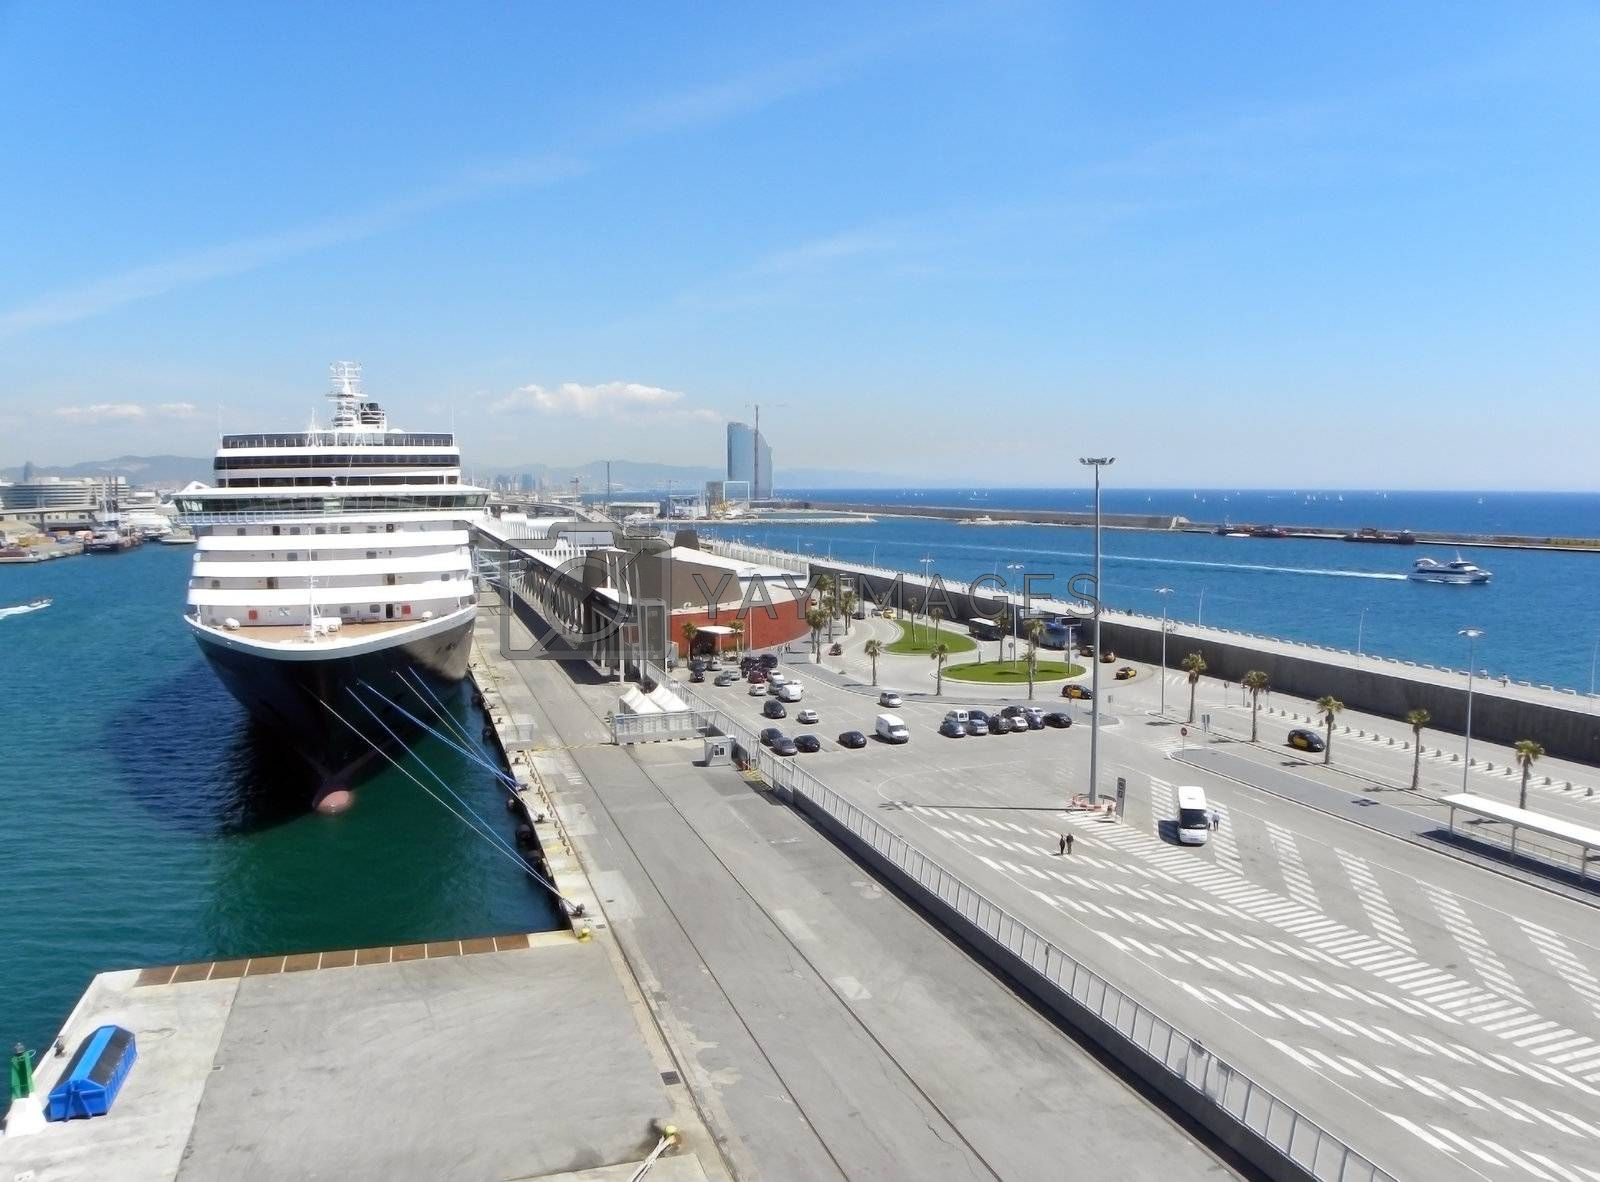 Cruise ship docked in the port of Barcelona